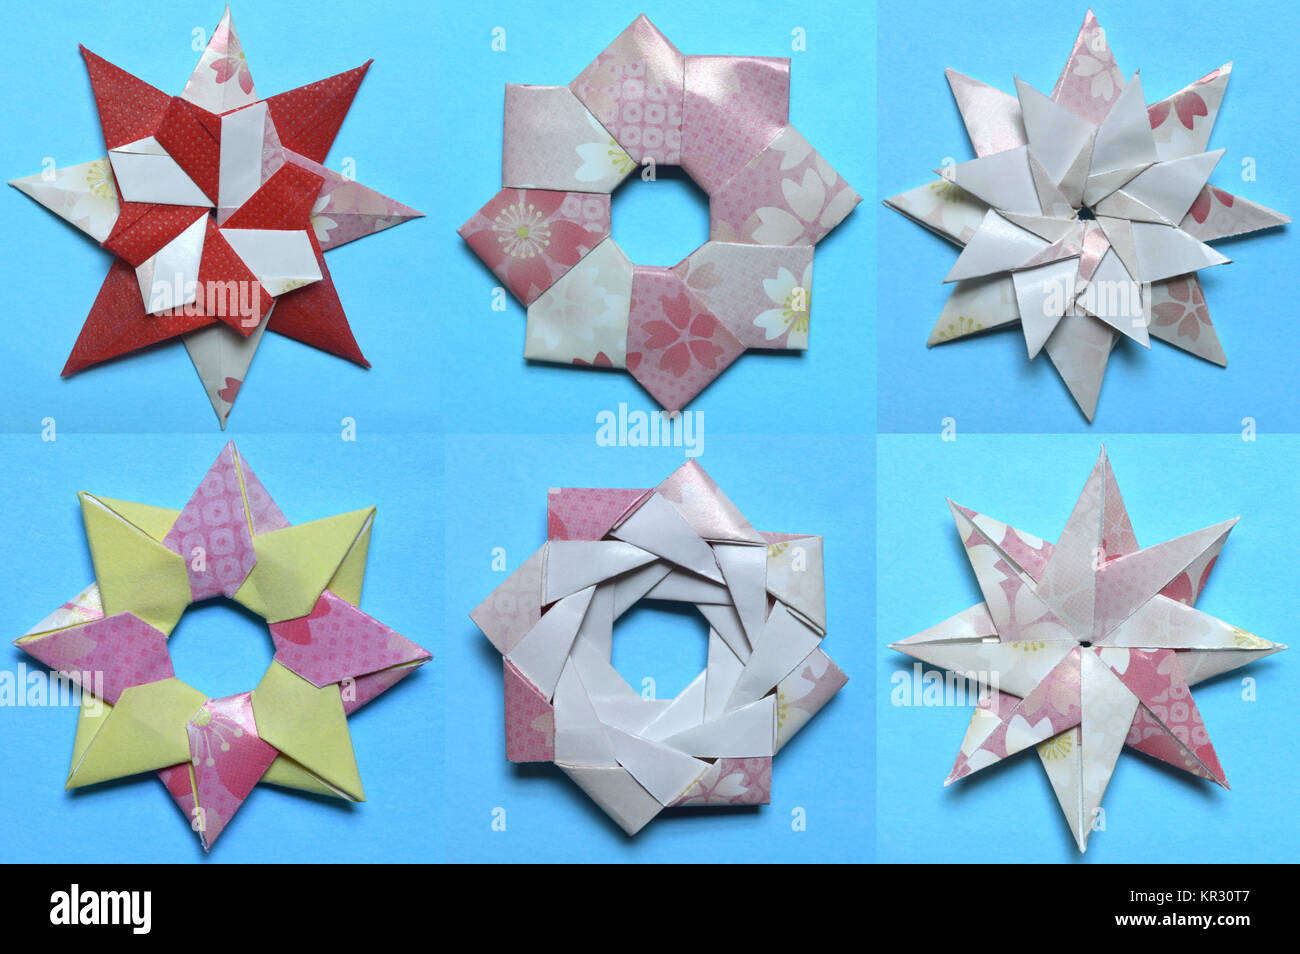 Origami Modular Spiral Star | How To Make A Spiral Spring Paper ... | 954x1300